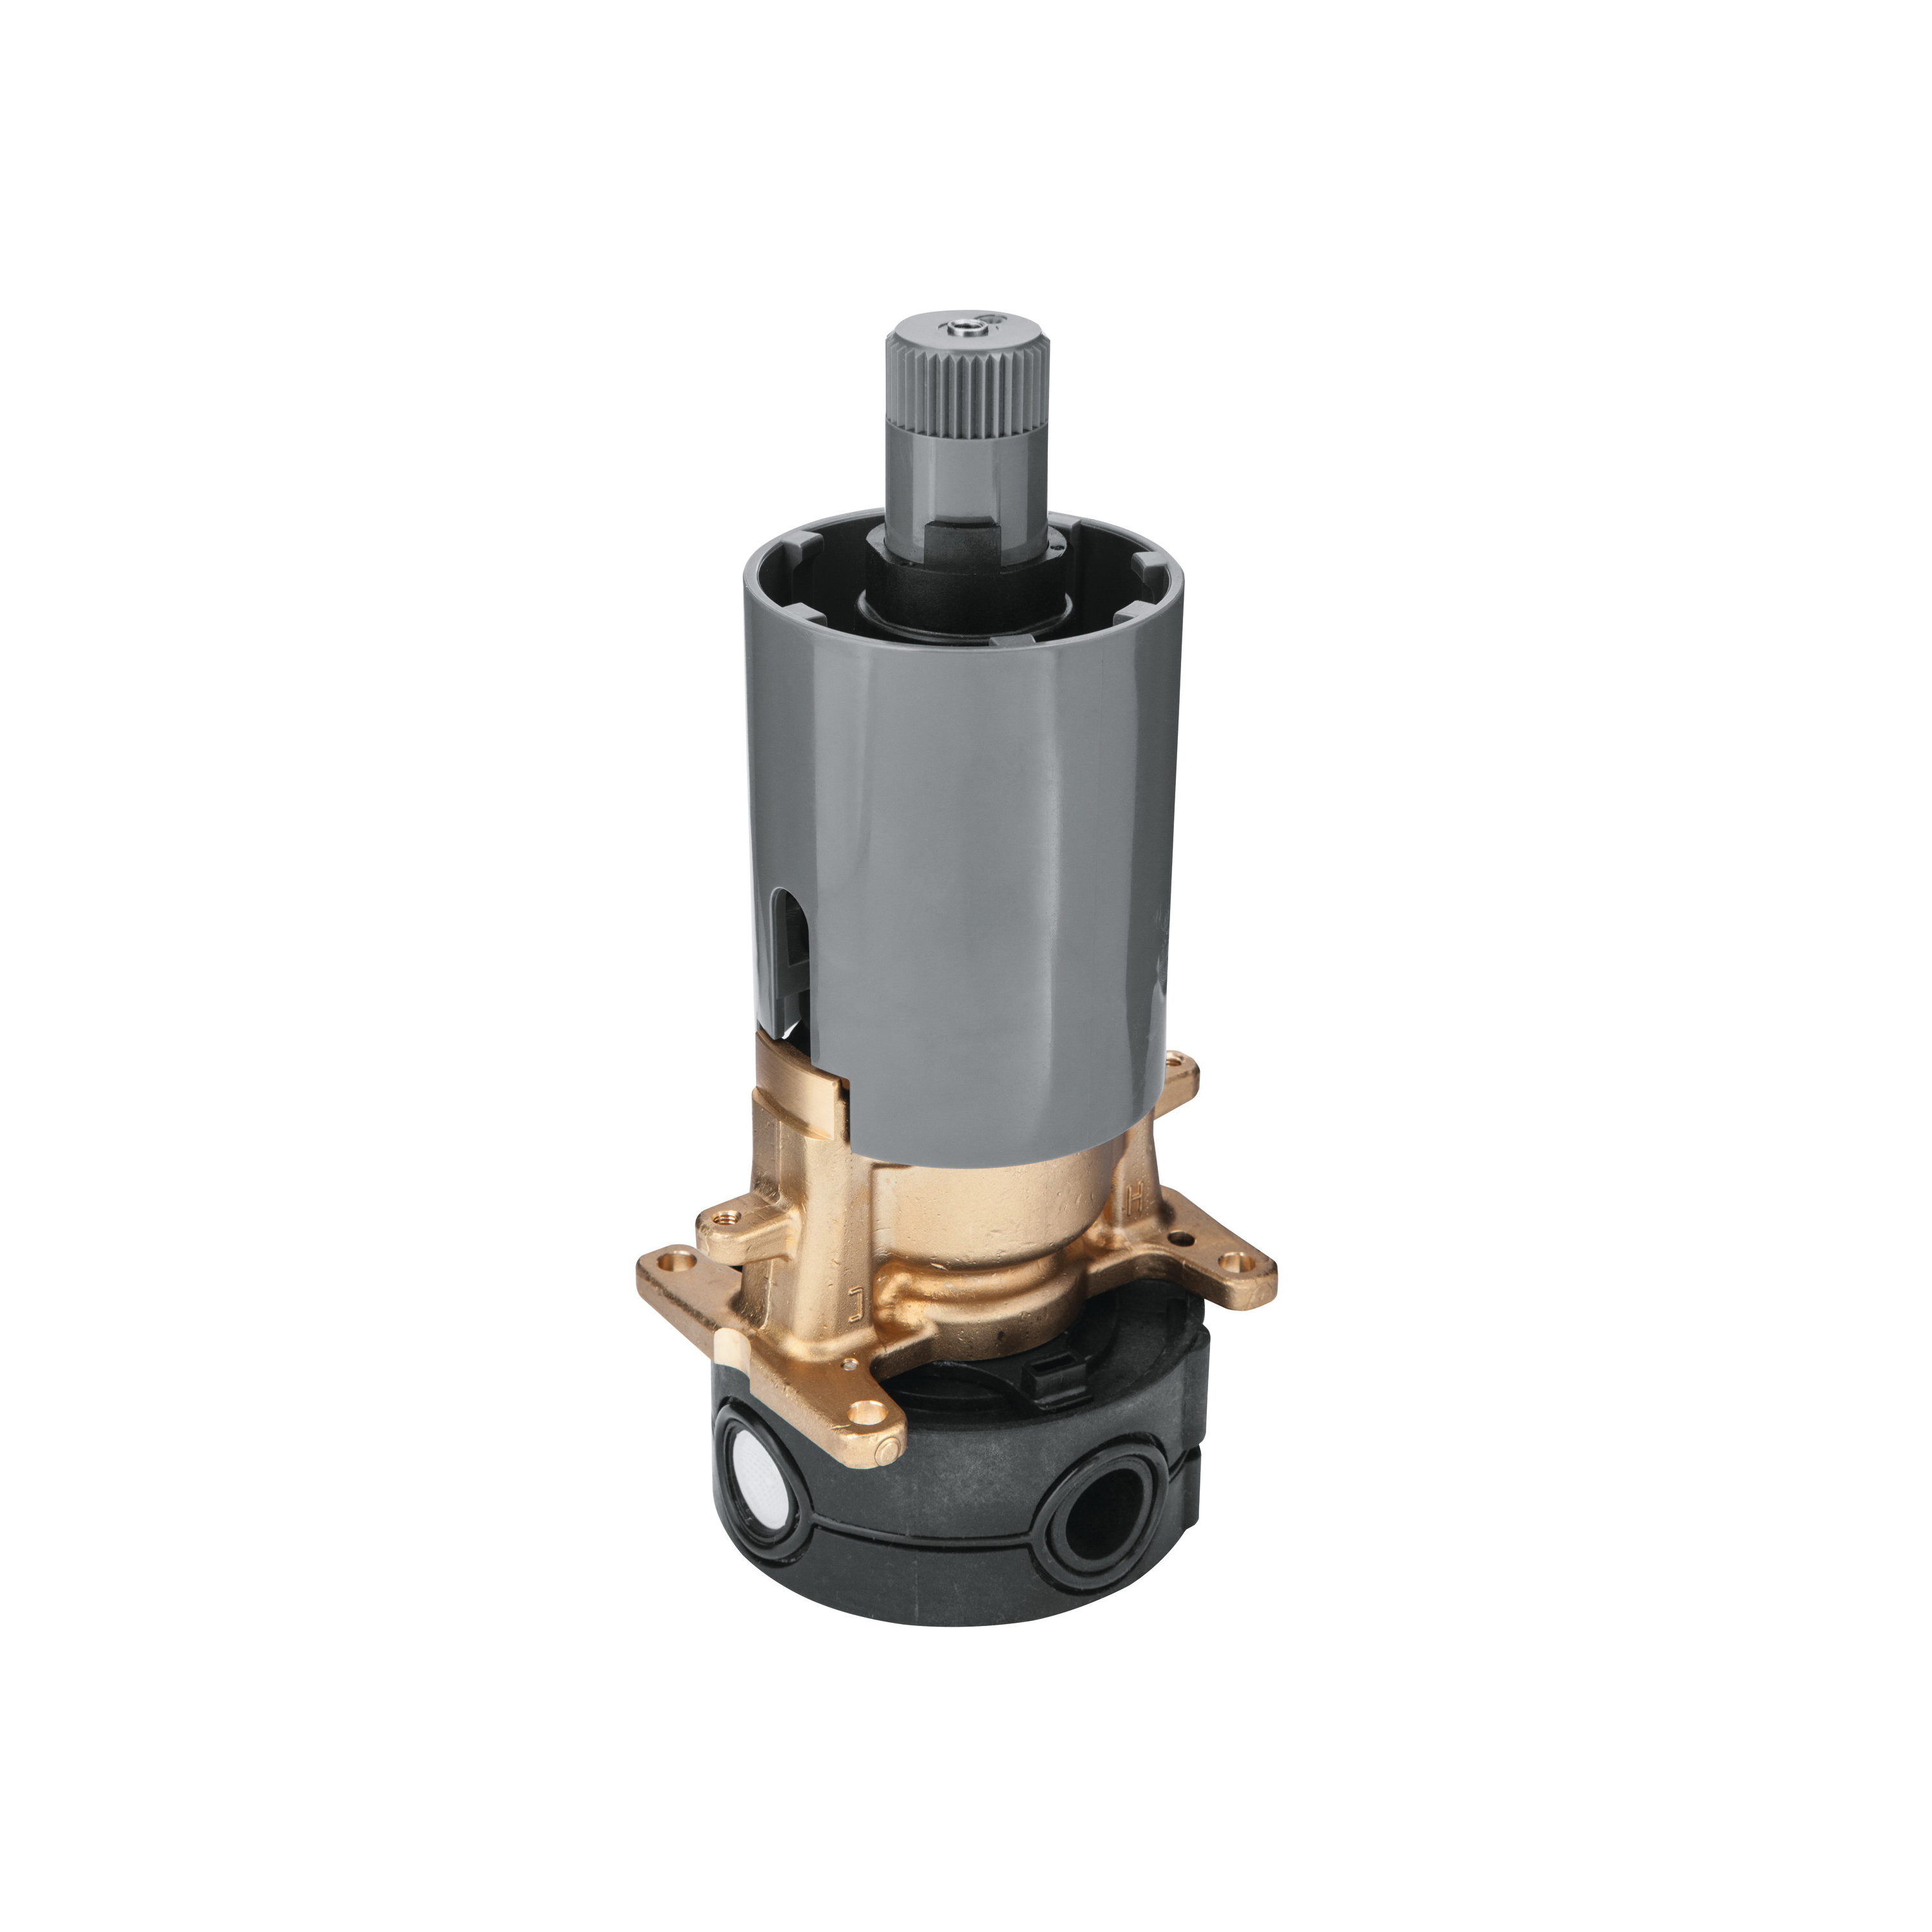 GROHE 47855000 Cartridge, For Use With: Model 19865 Timeless Thermostatic Trim, Import